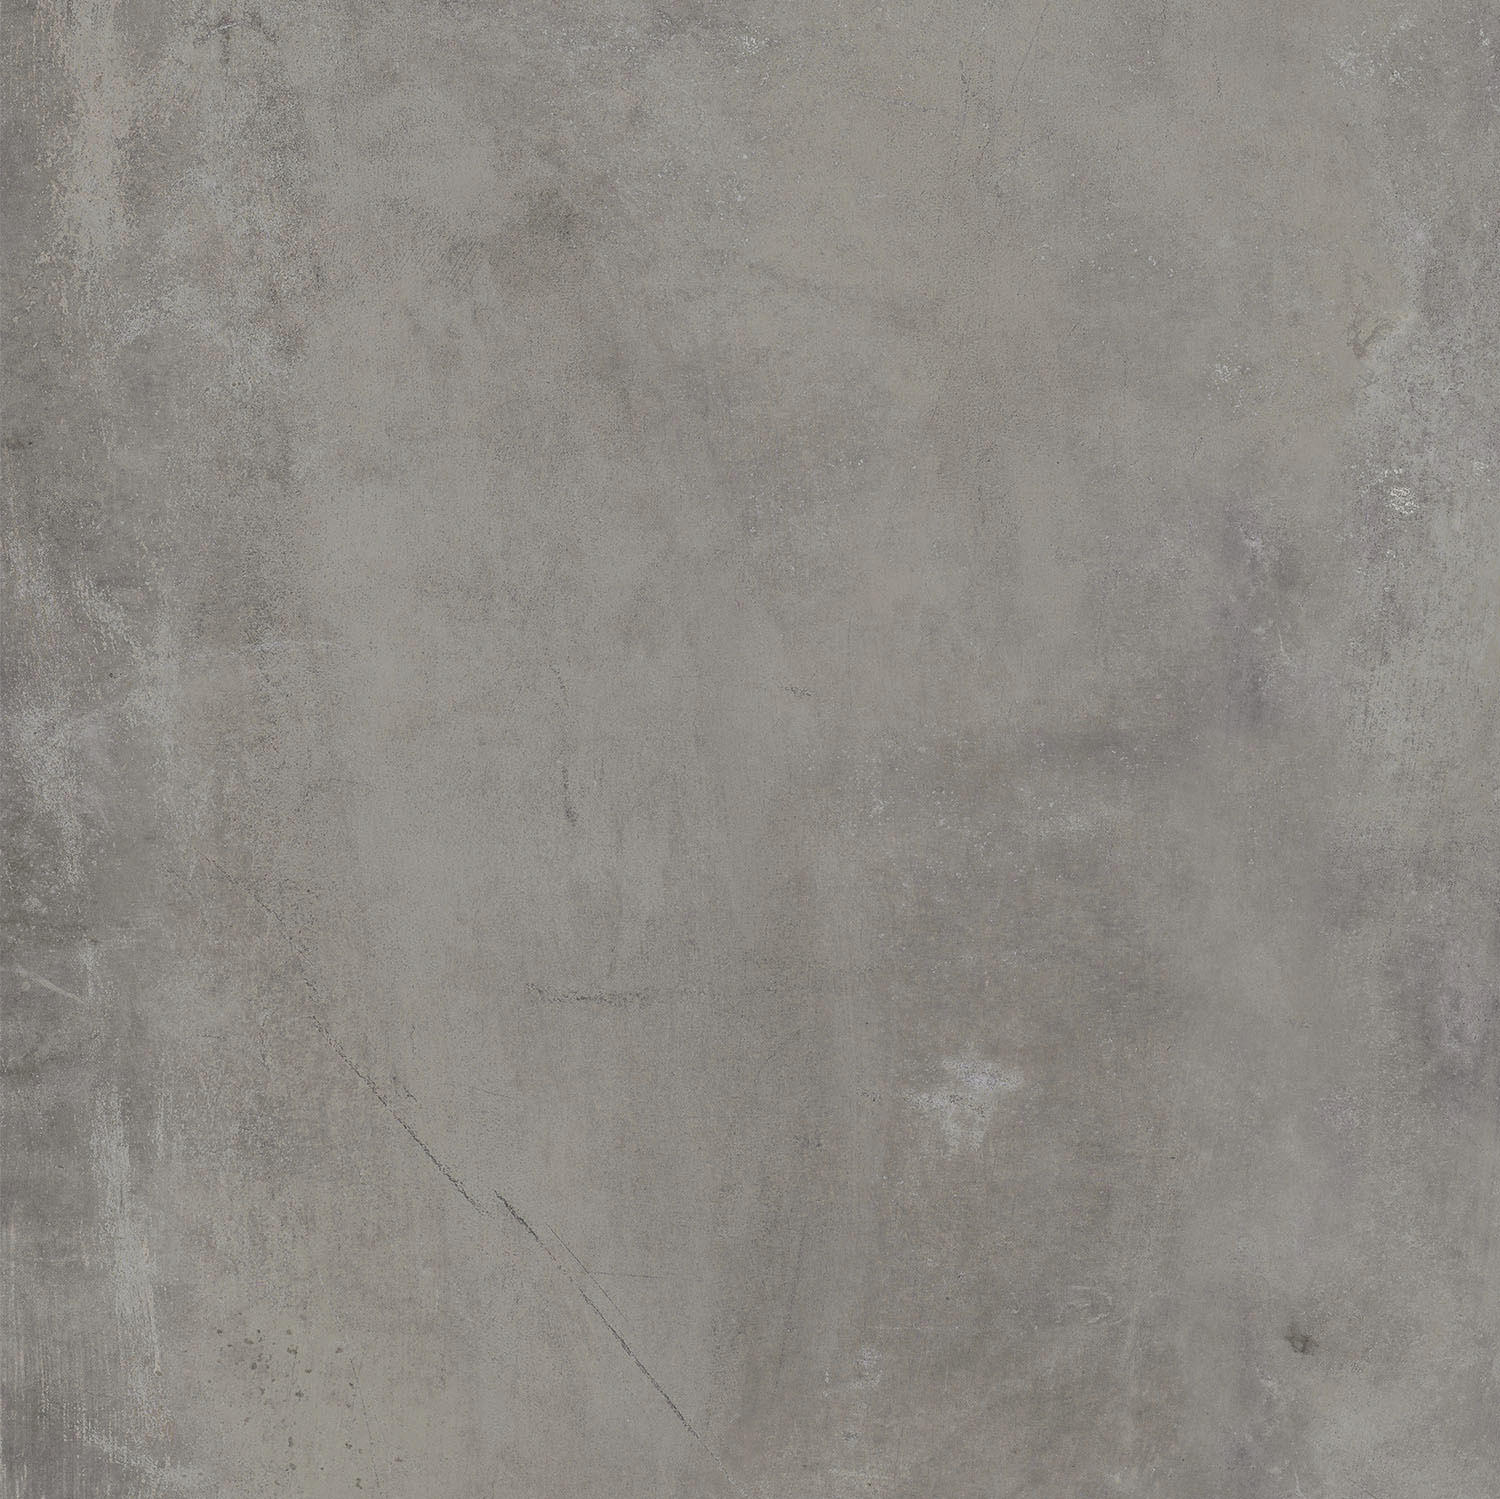 Level Set Textured Stones A00302 Cool Polished Cement